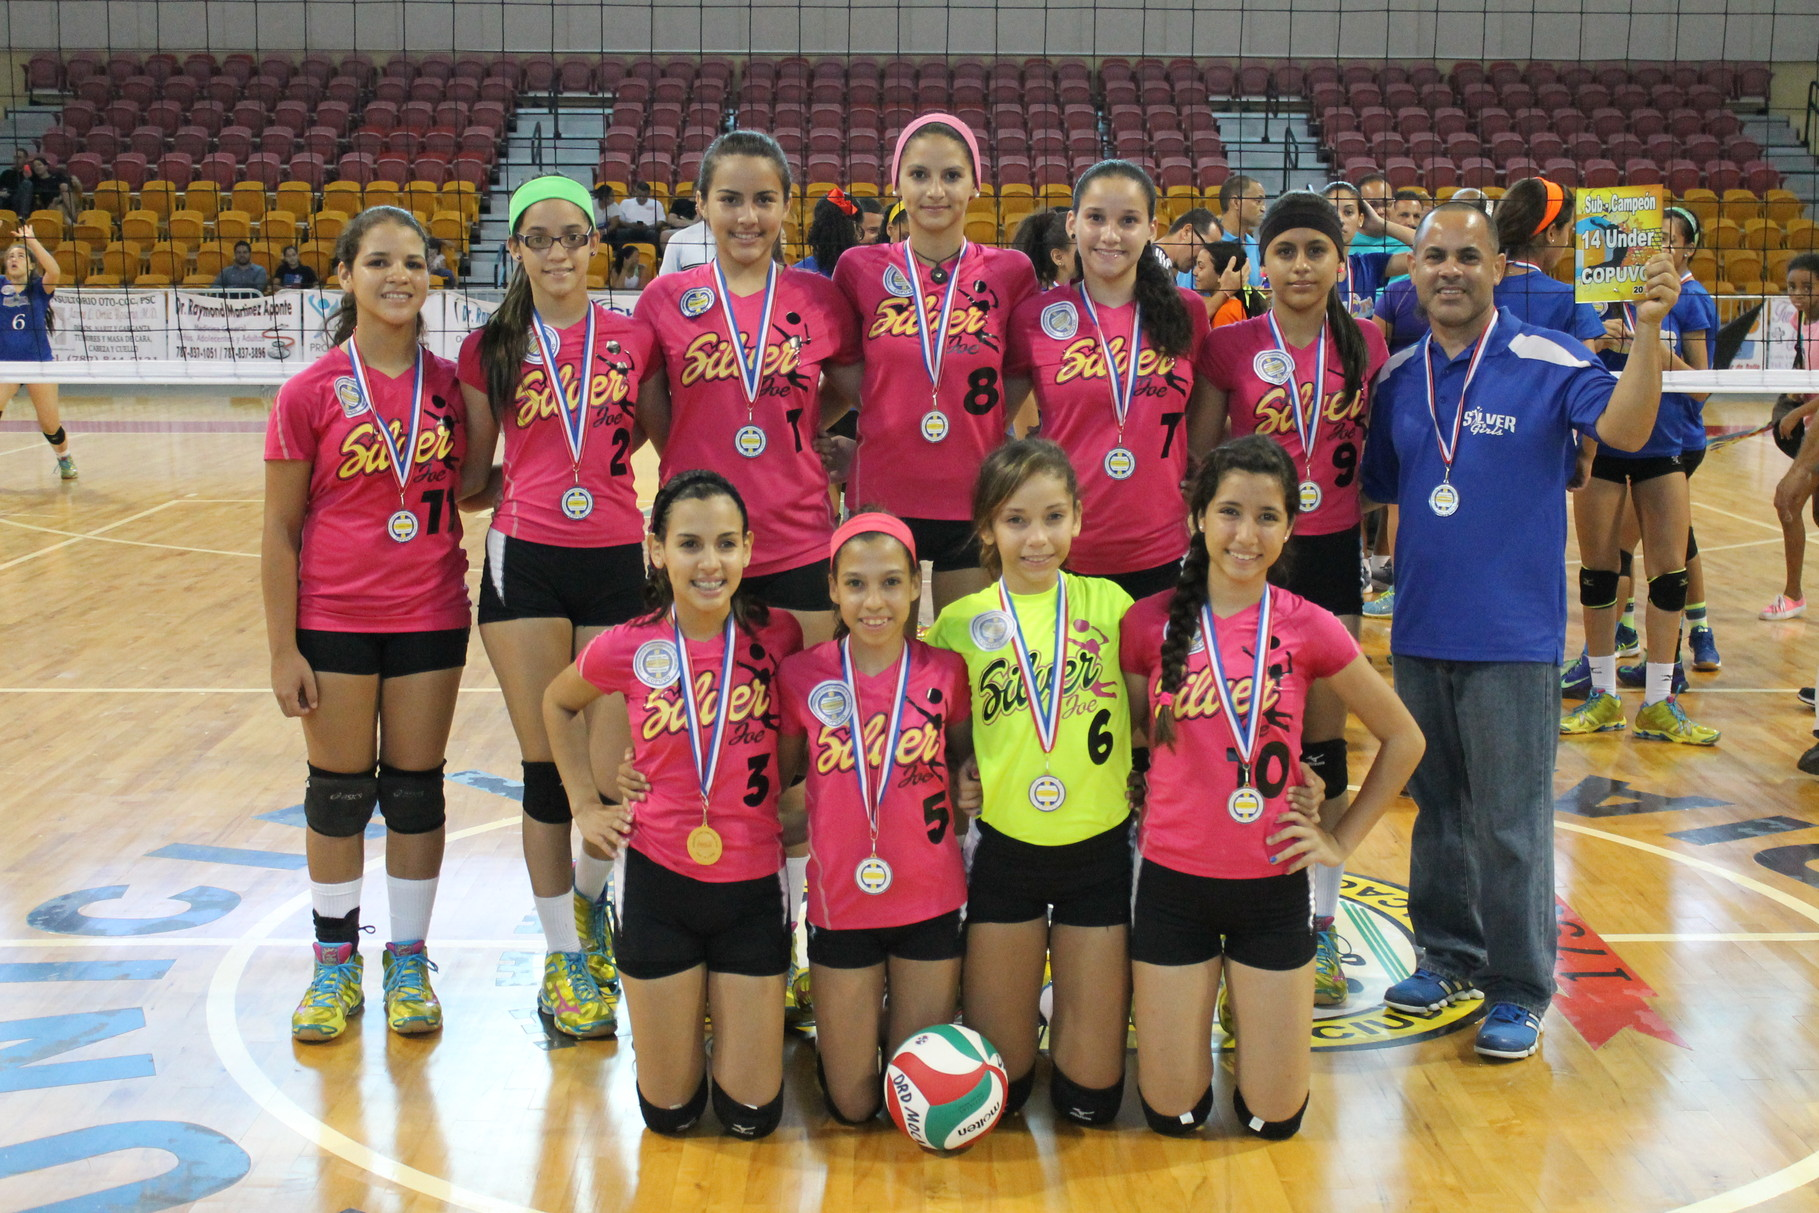 LAS SILVER GIRLS DE MOCA SUBCAMPEONAS EN 14 UNDER